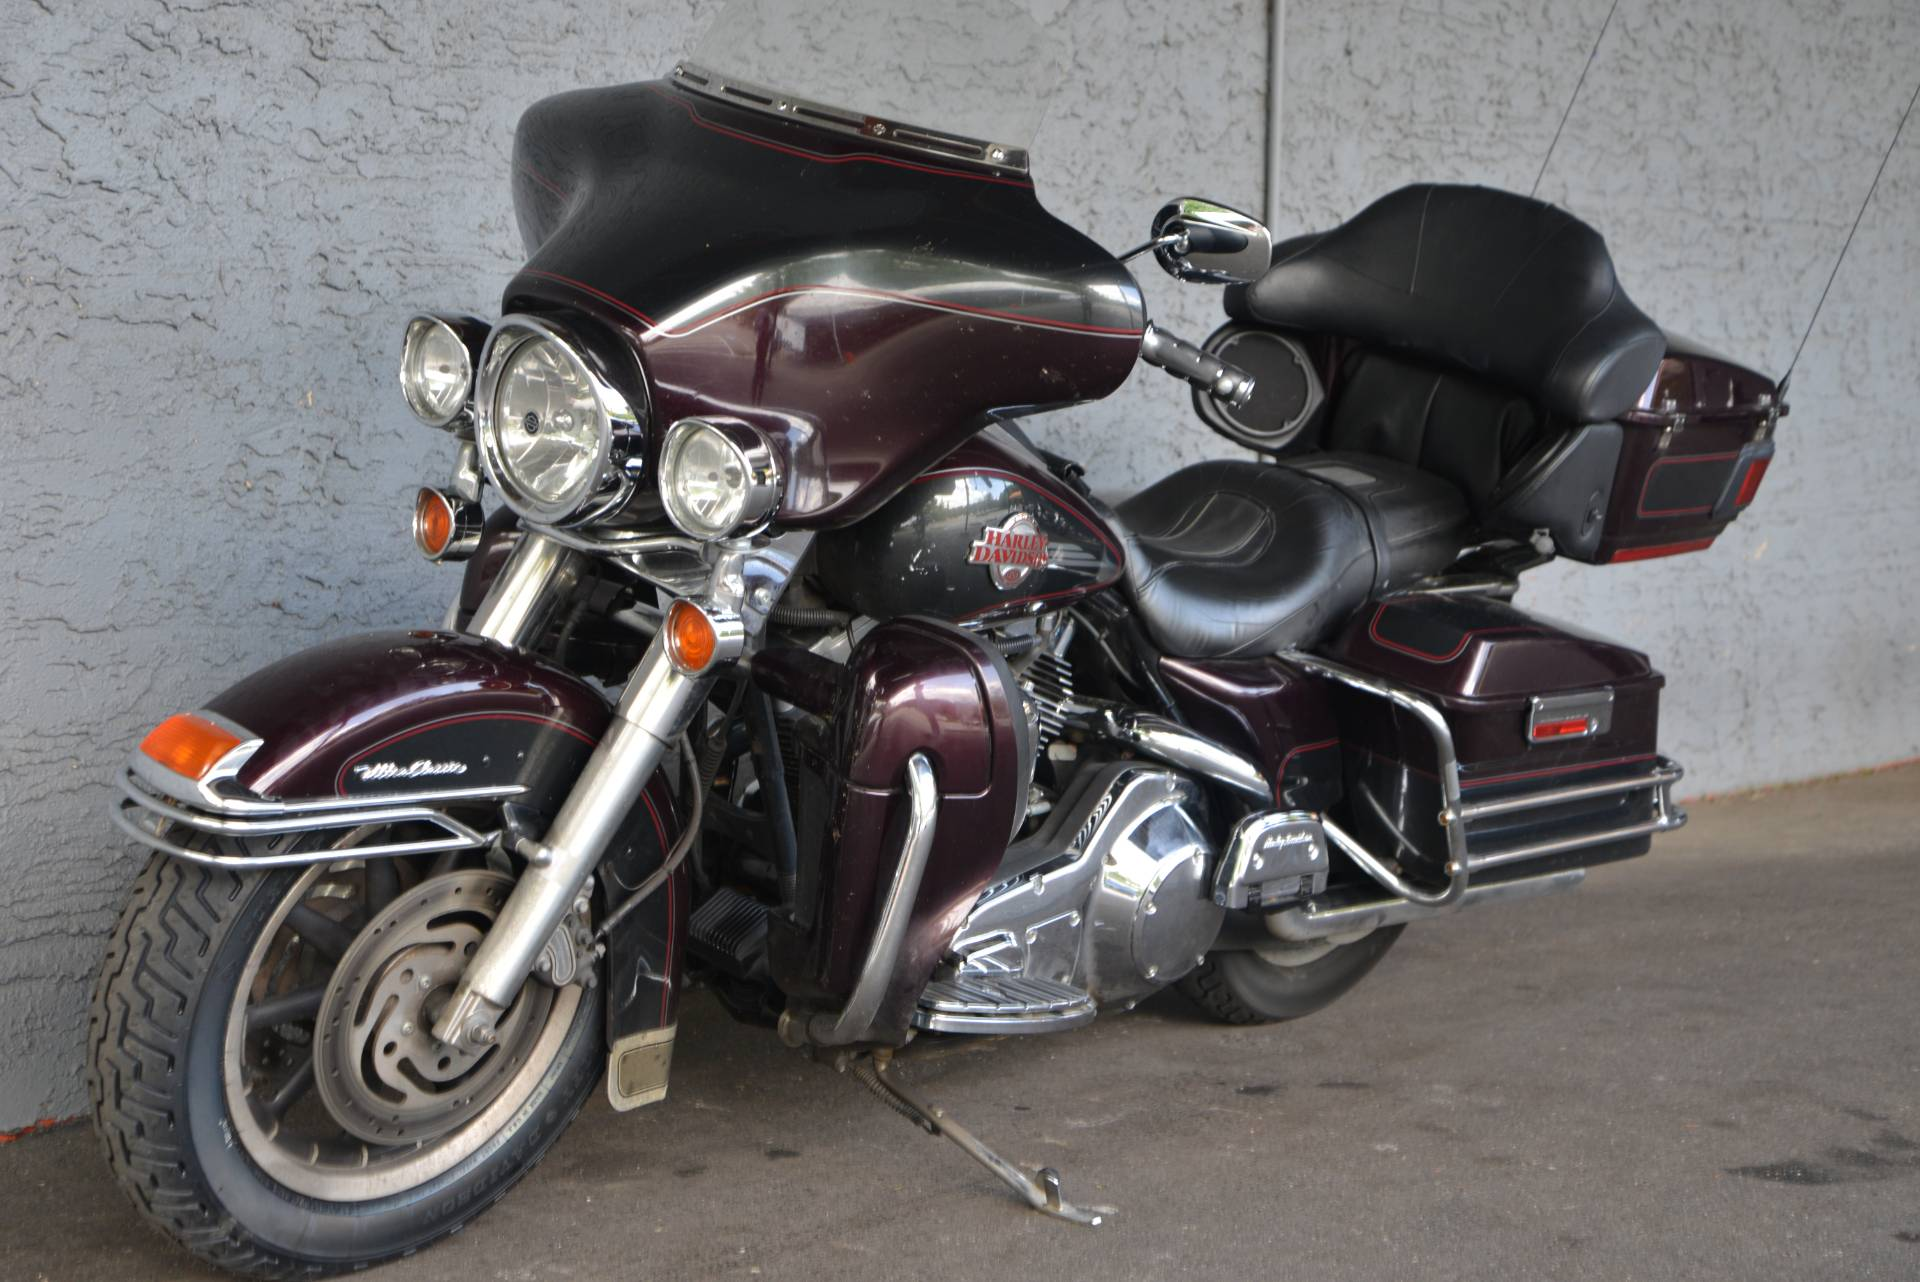 2006 Harley-Davidson ELECTRA GLIDE ULTRA in Lakewood, New Jersey - Photo 13